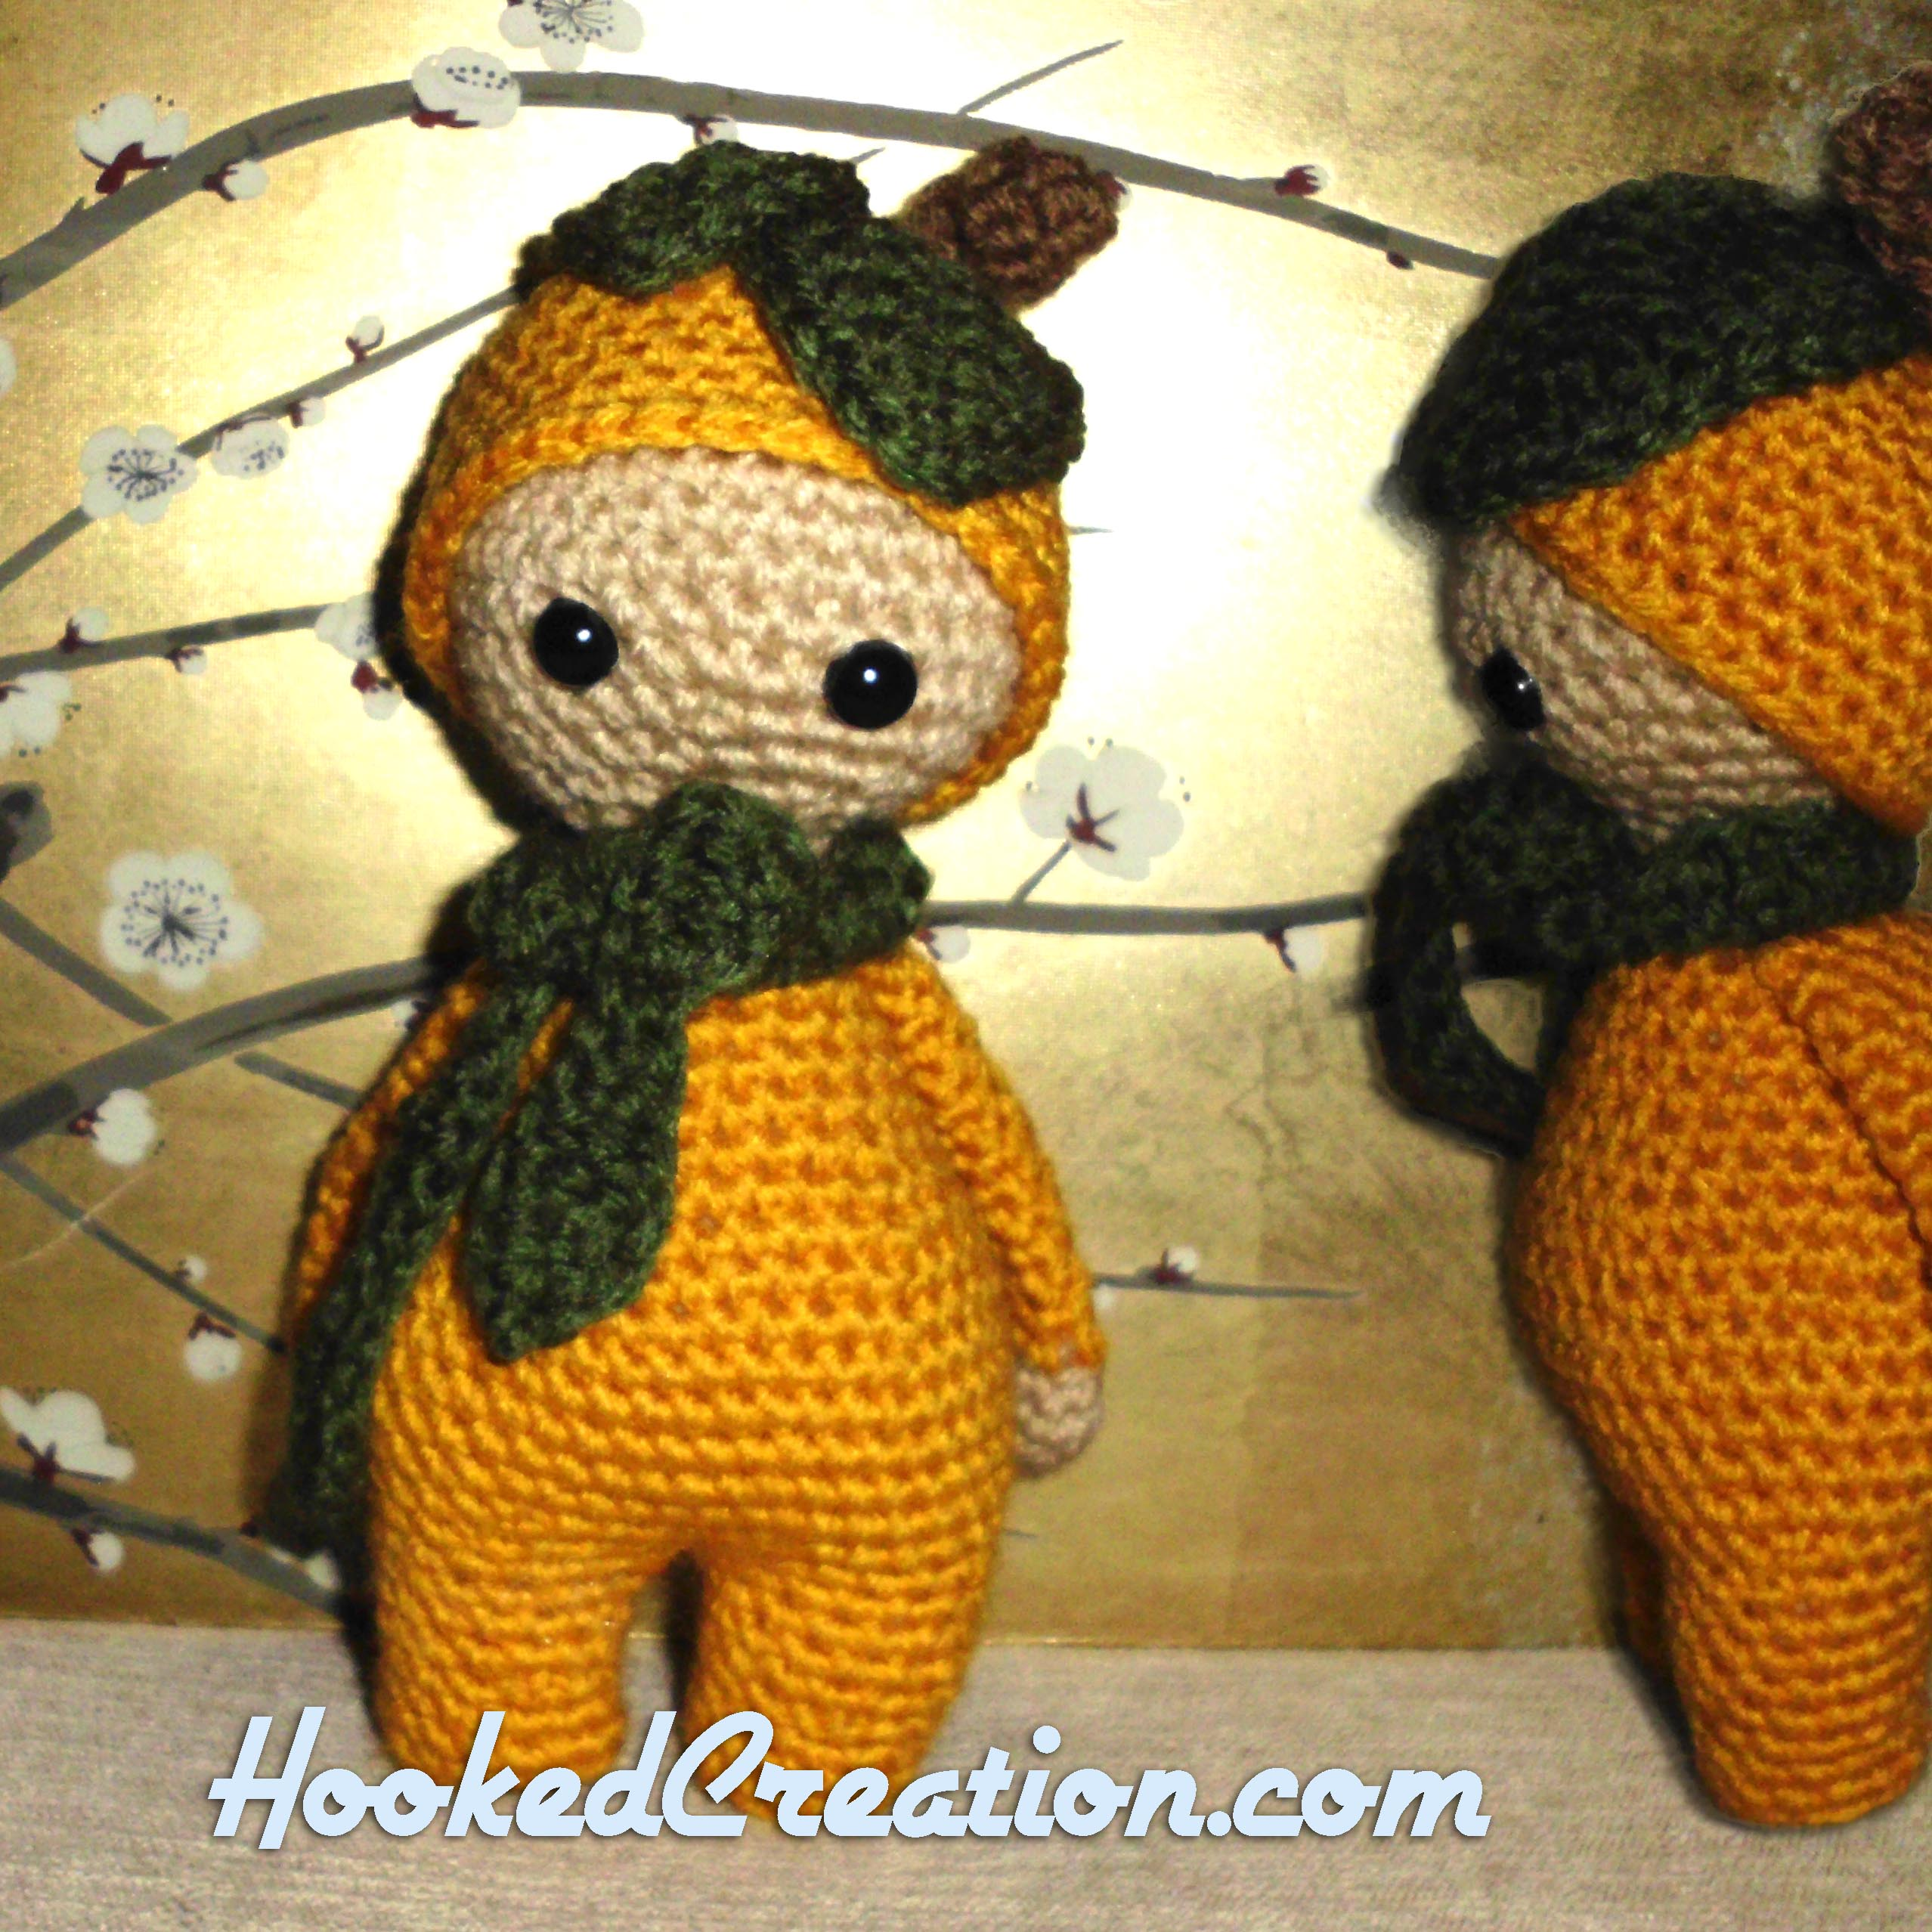 Amigurumi Viking. Free pattern from Christen Haden to complement ... | 2556x2556